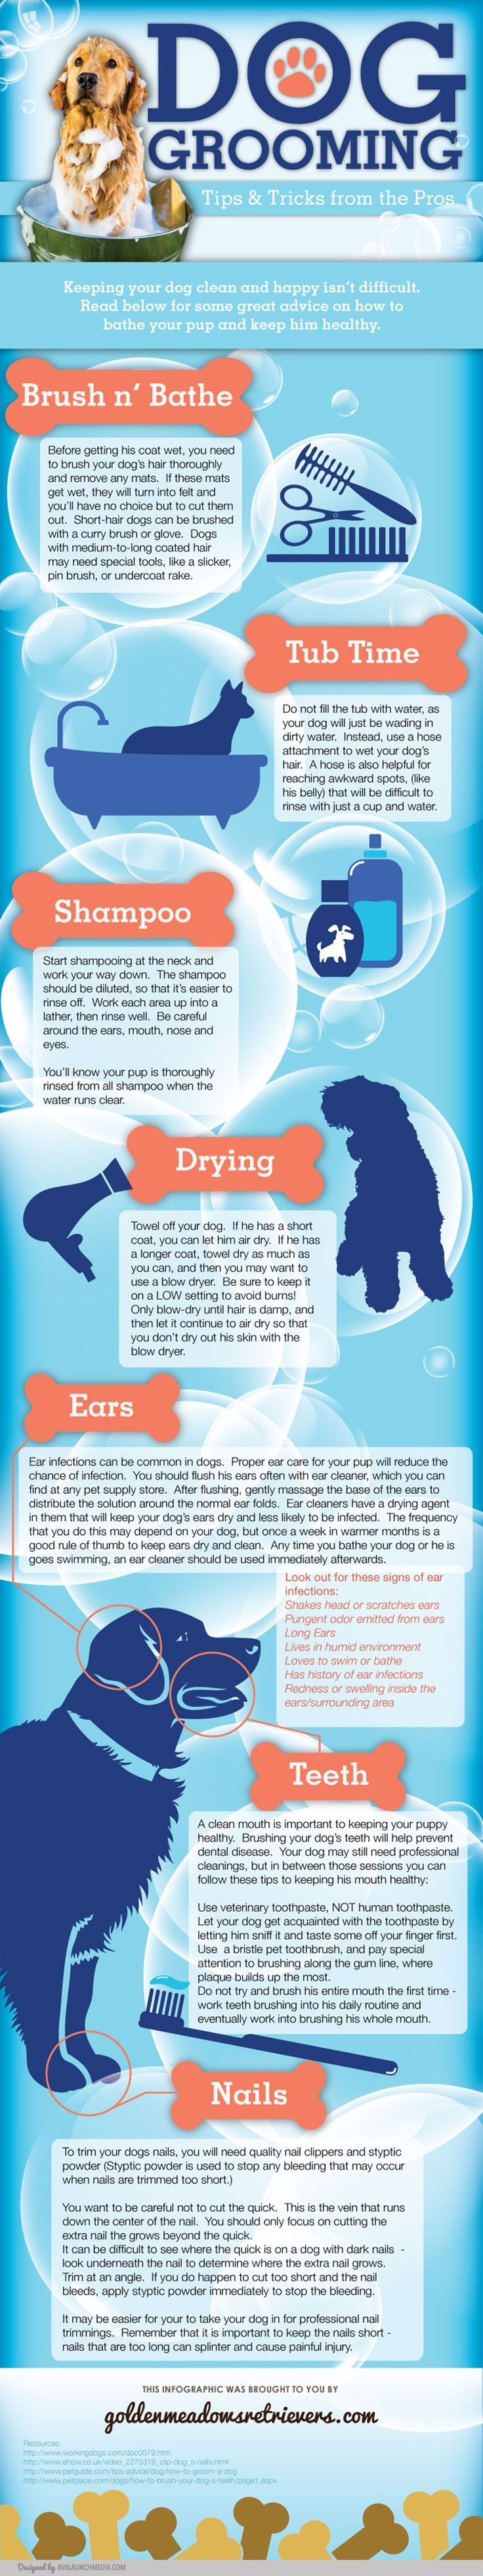 Are you an animal lover? Maybe you're a pet owner, and as you know it can be expensive to have a furry little friend. Bringing your friend to the vet, buying food, treats, toys, and of course having them groomed, can sure add up in bills. Well here's some tips to help you save and groom your own fur-baby!